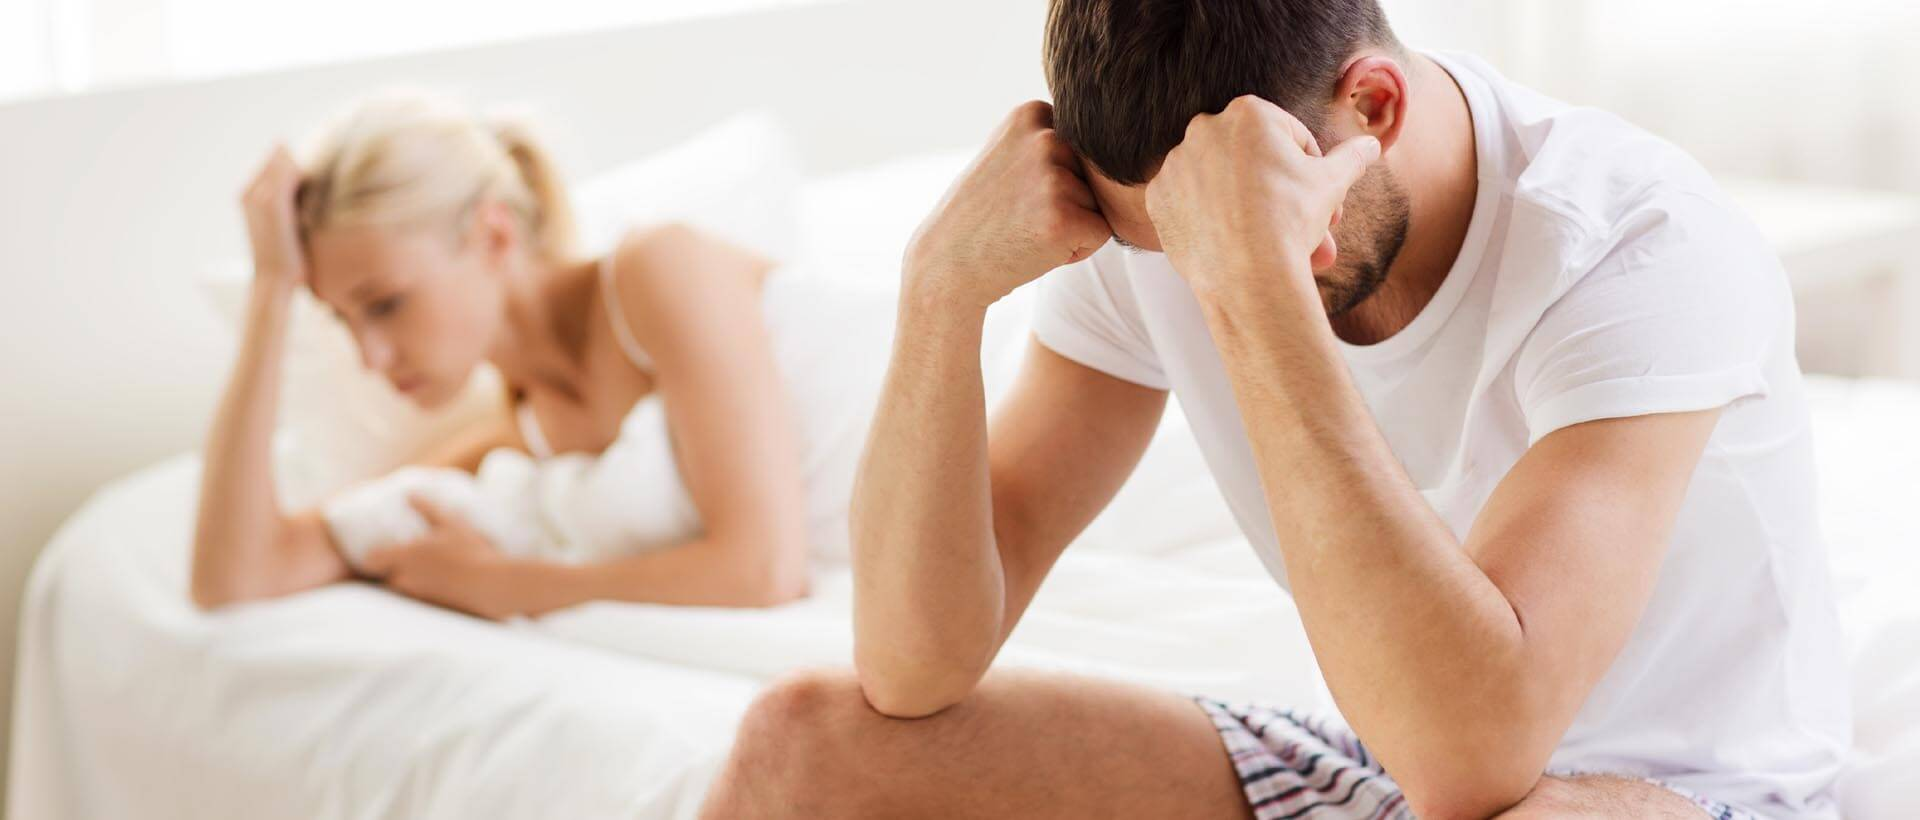 Erectile dysfunction treatment: How can your partner help?